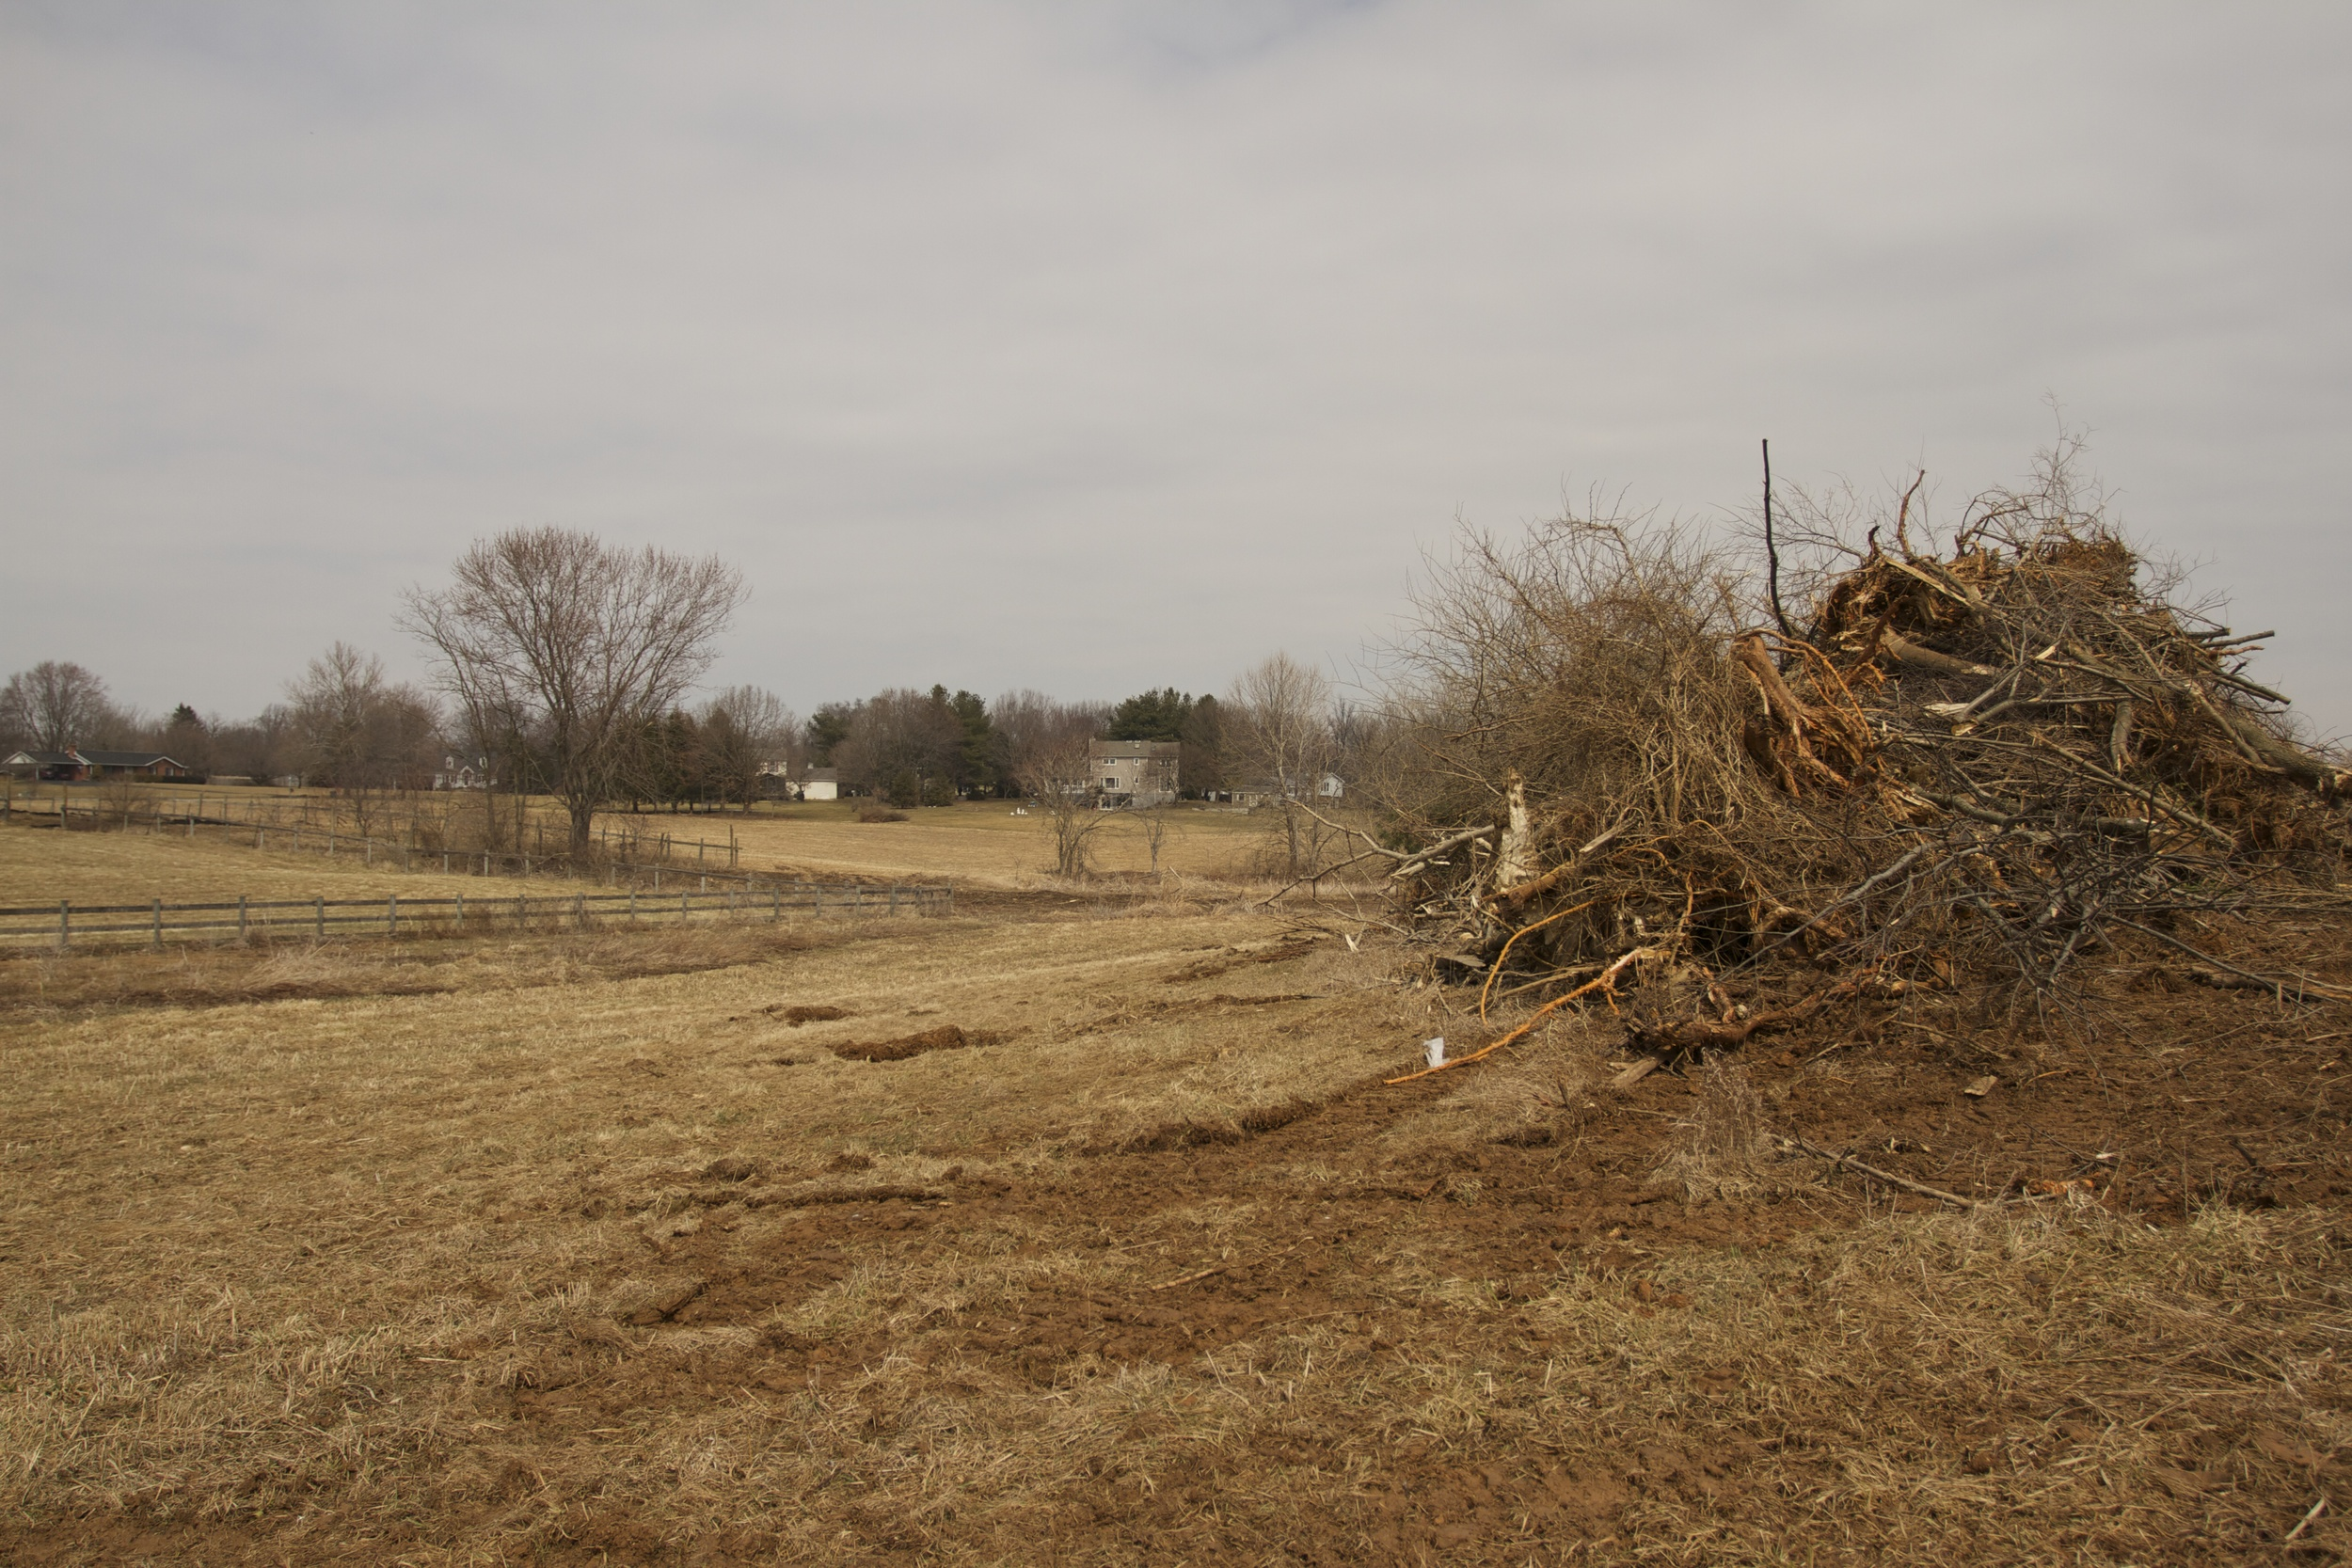 Bulldozed junk trees waiting for a burn next winter! Our view has changed drastically since September!!!